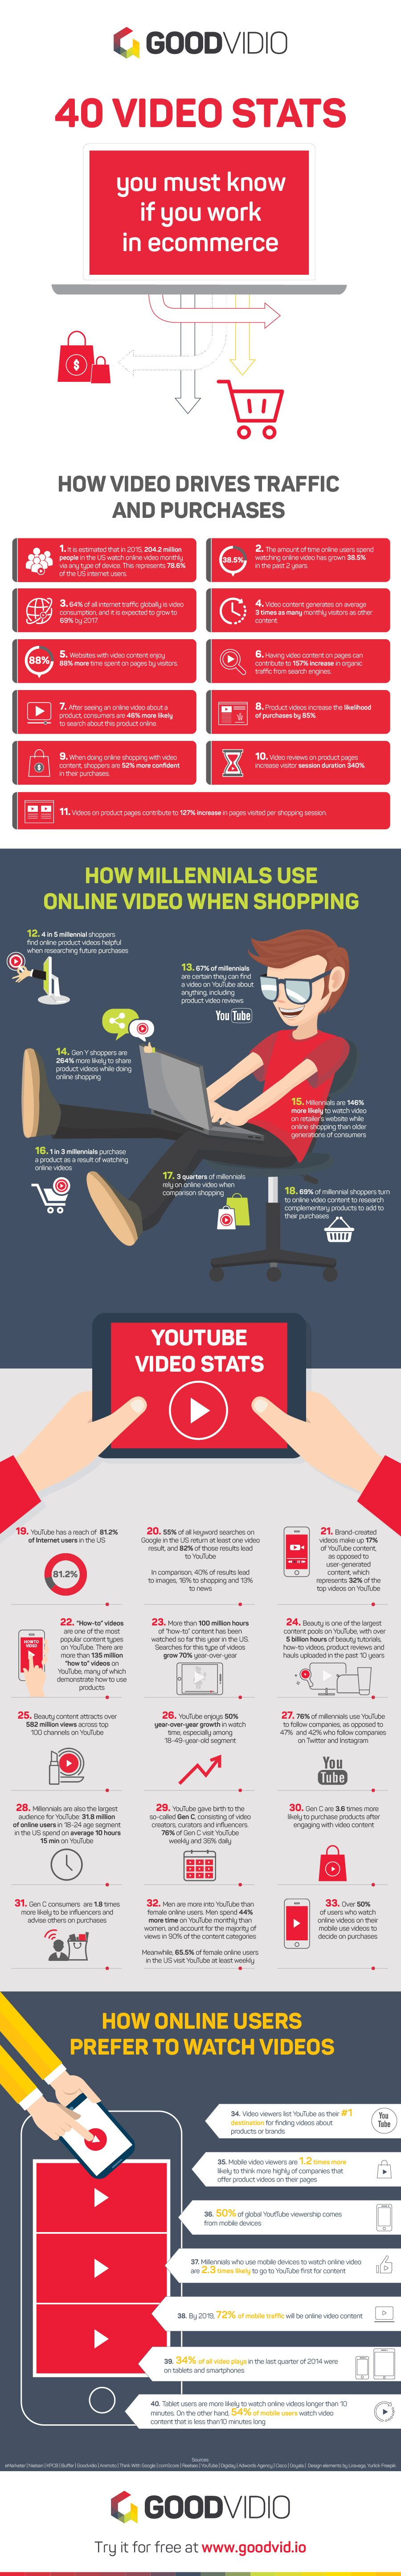 E-Commerce Video Trends